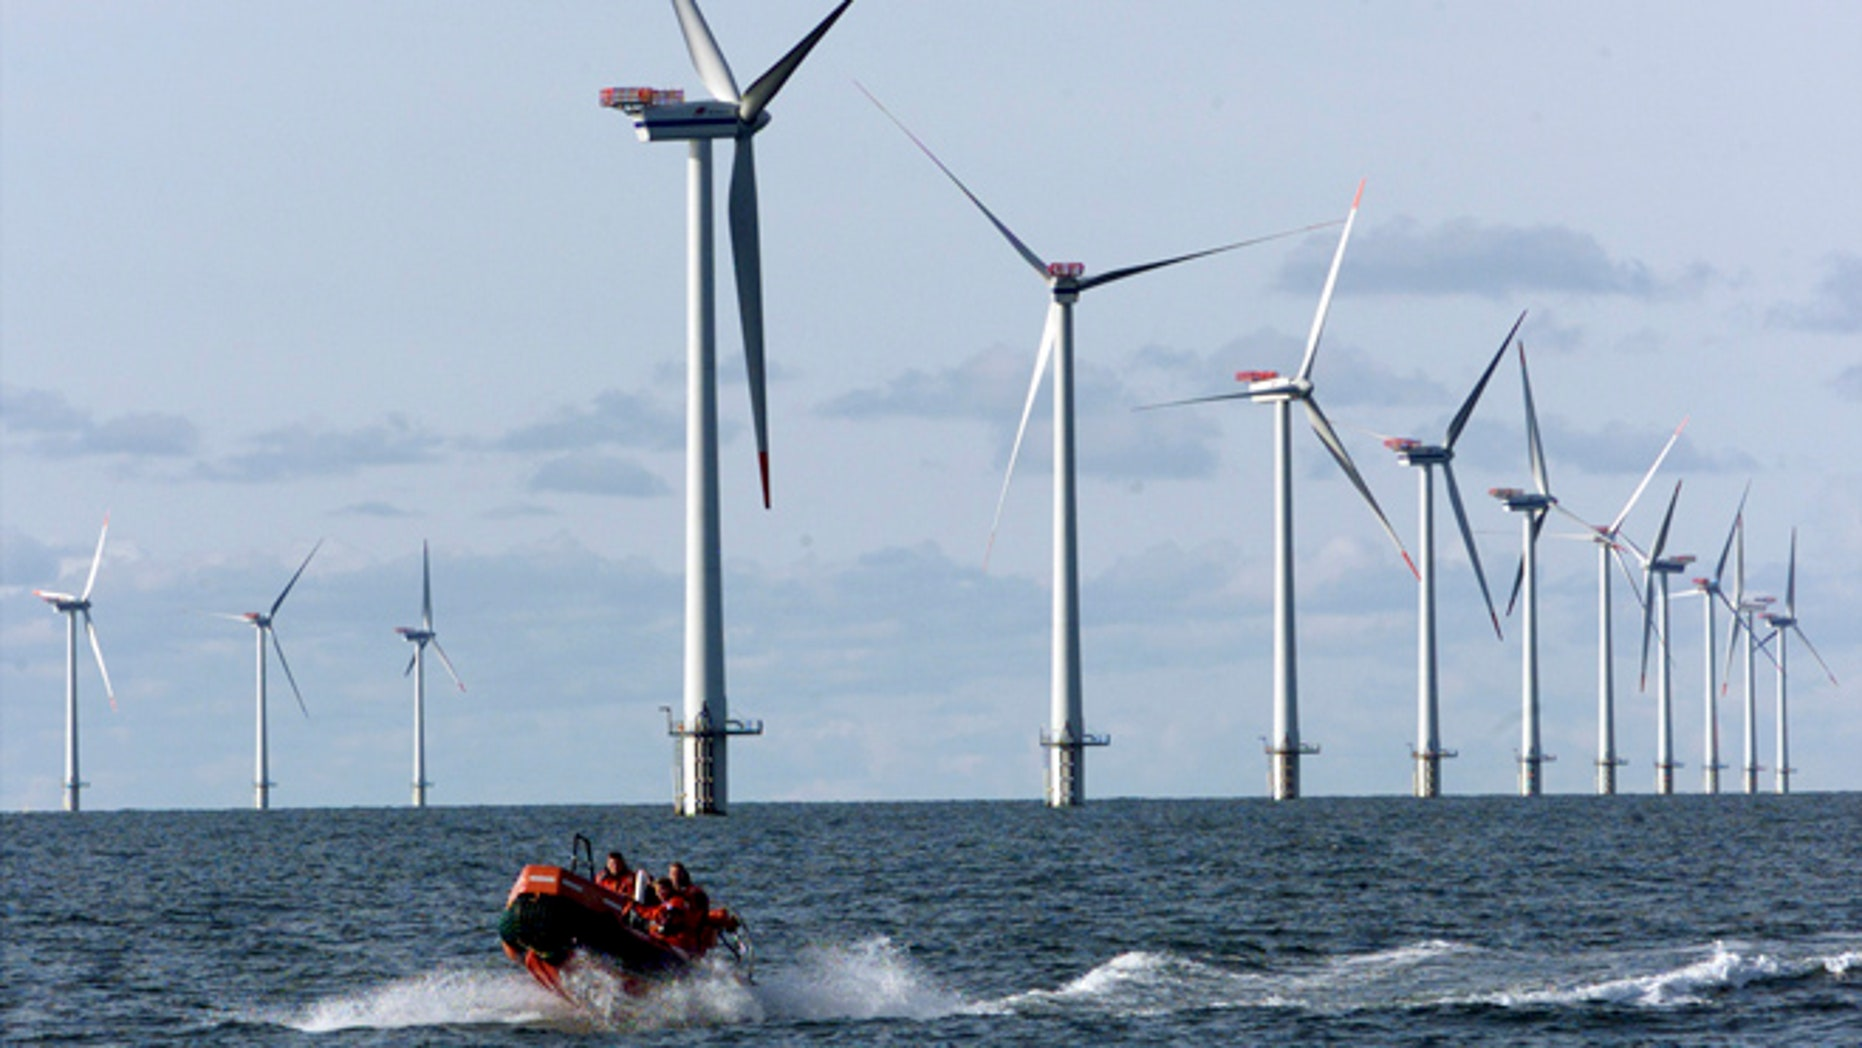 FILE 2002: Offshore windmills in the North Sea offshore from near Esbjerg, Denmark. Officials said five floating turbines will be placed off Oregon's Coos Bay.